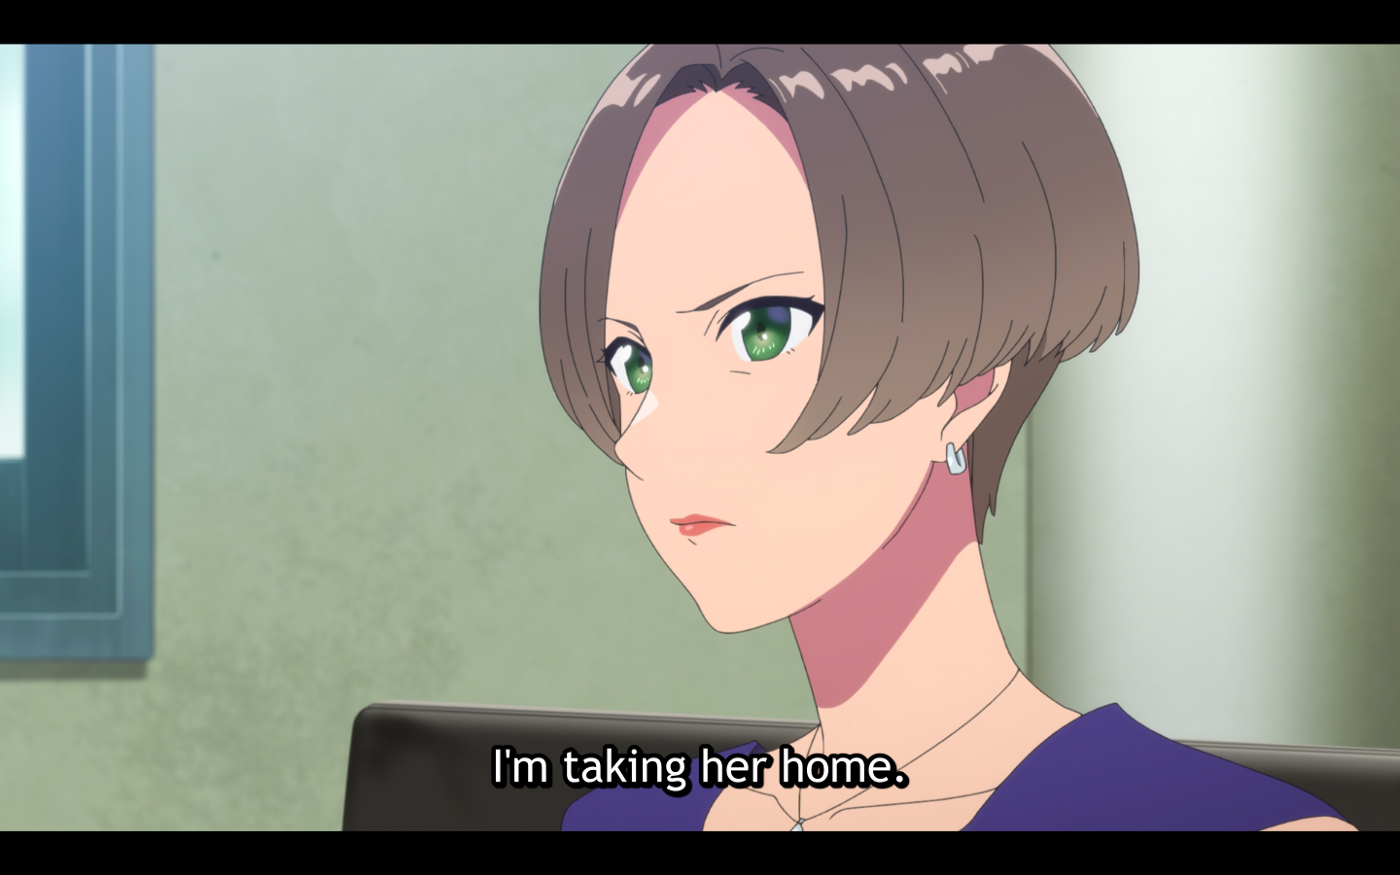 Fuuka's mother states her intent to bring Fuuka back home.